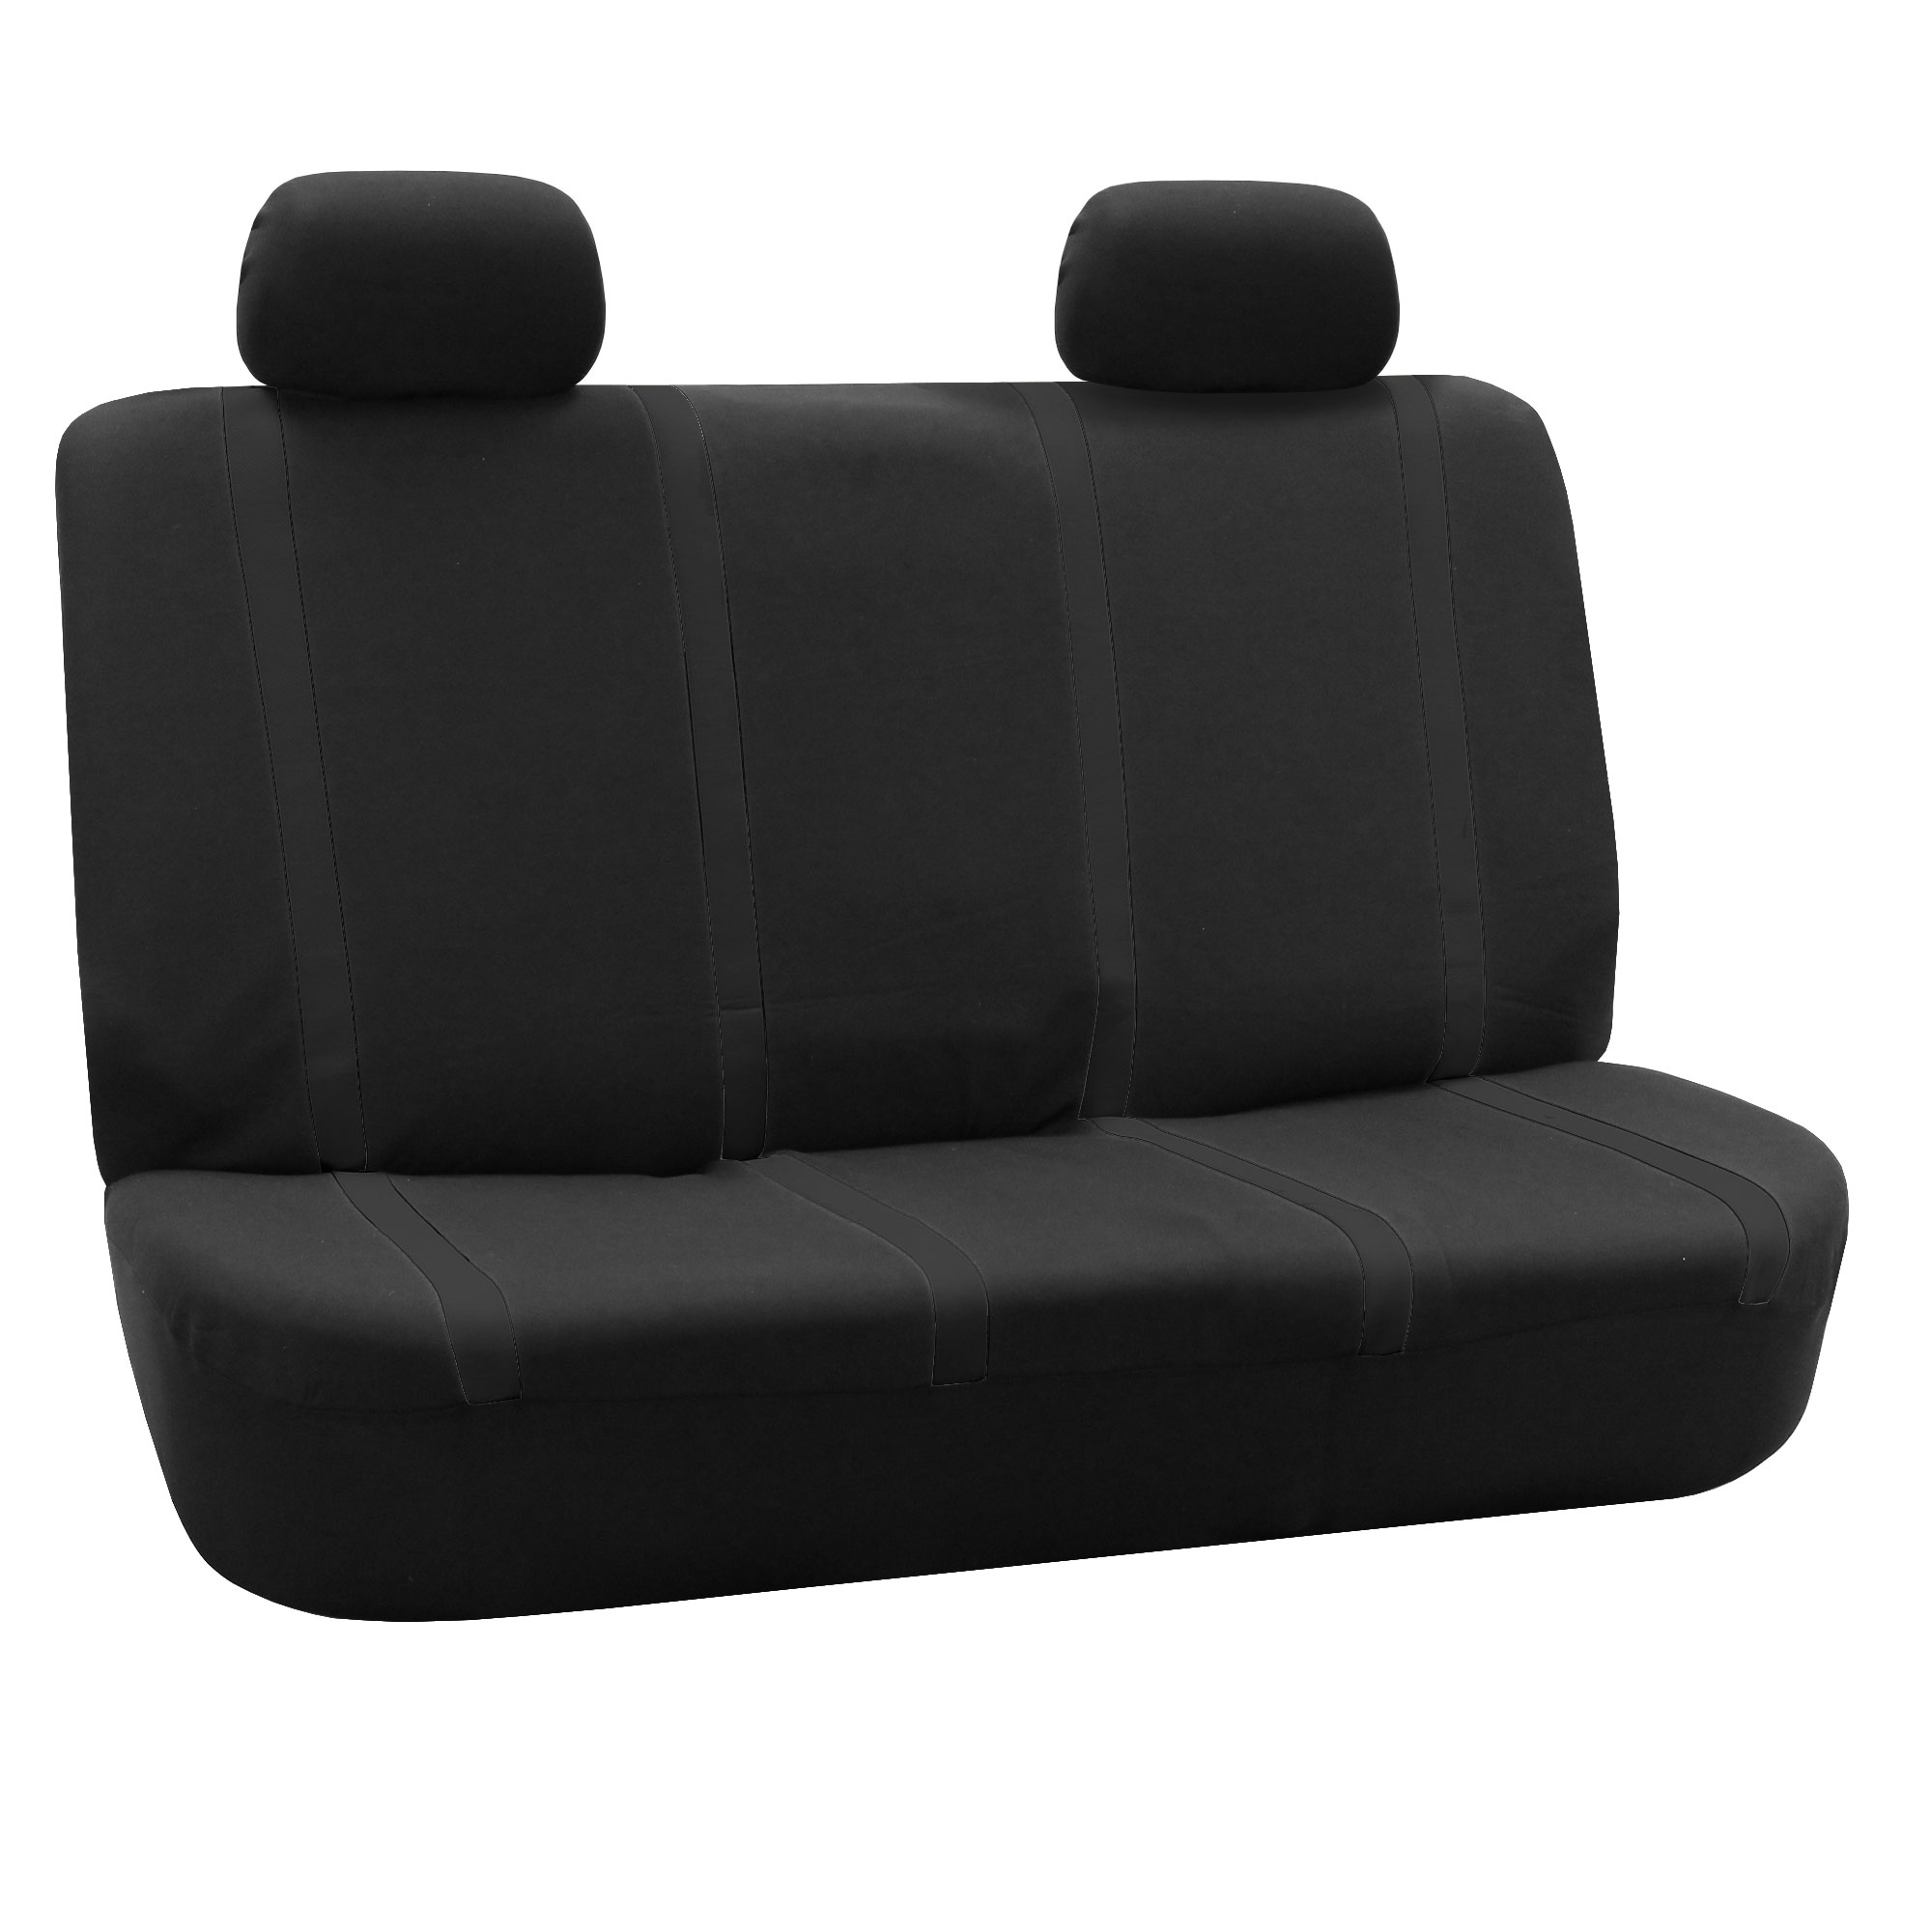 Auto-Seat-Covers-for-Car-Sedan-Truck-Van-Universal-Seat-Covers-12-Colors